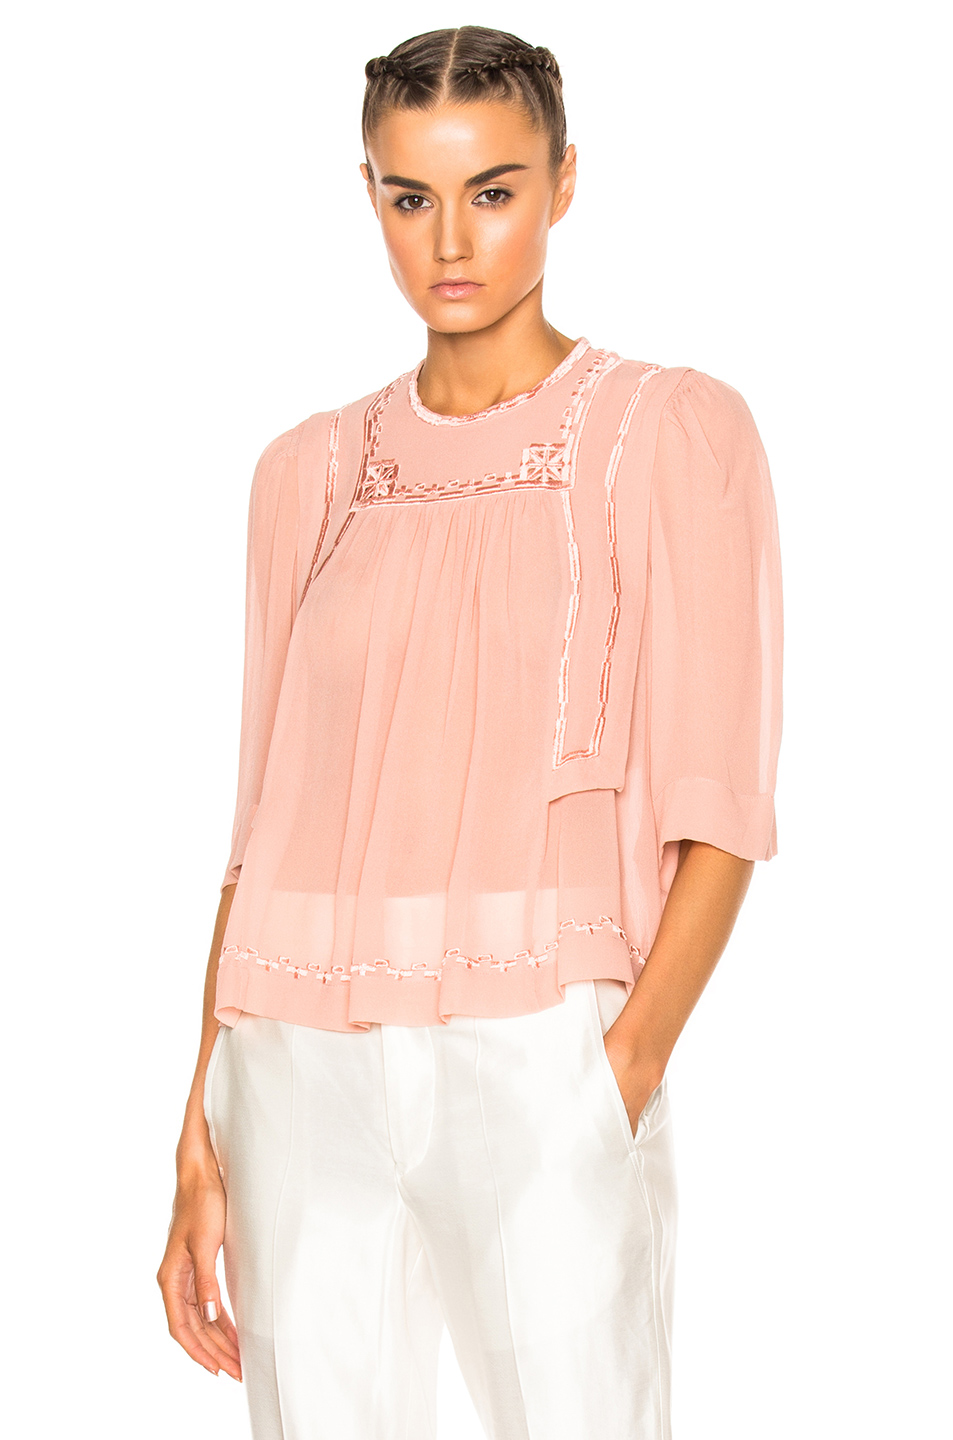 Isabel Marant Mara Blouse in Neutrals,Pink